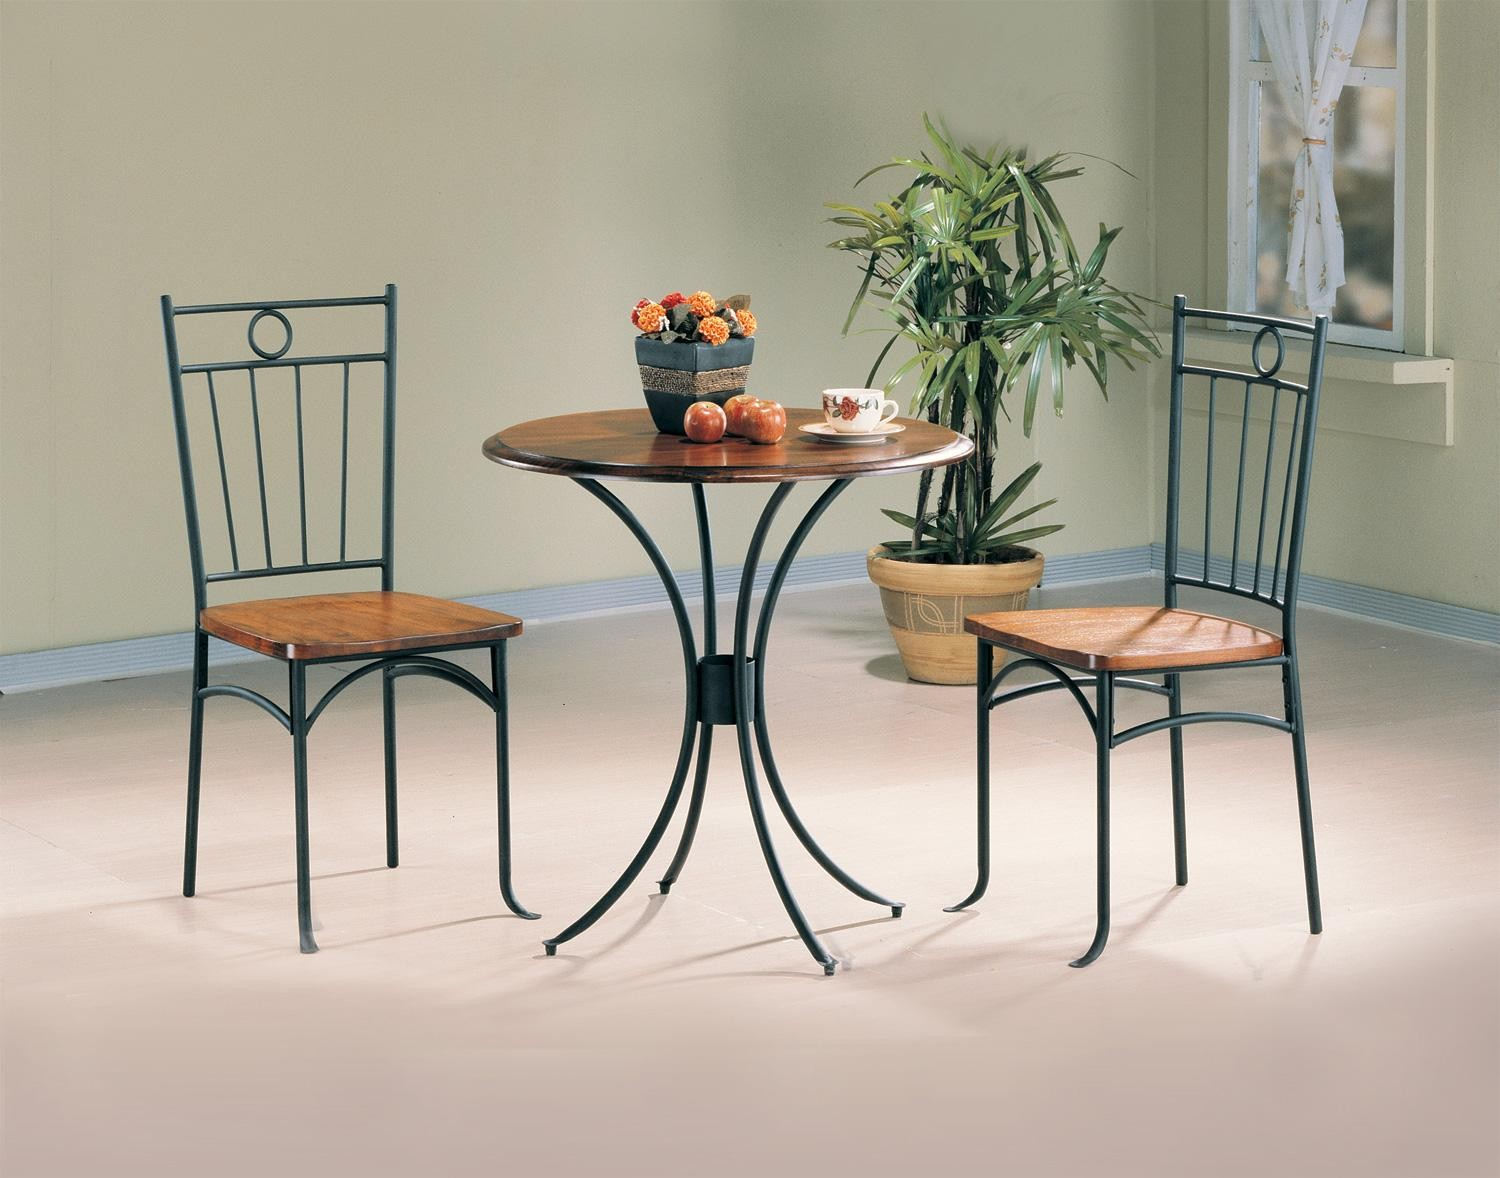 Black Bistro 3 Pcs Round Dining Table Set 5939 From Coaster 5939